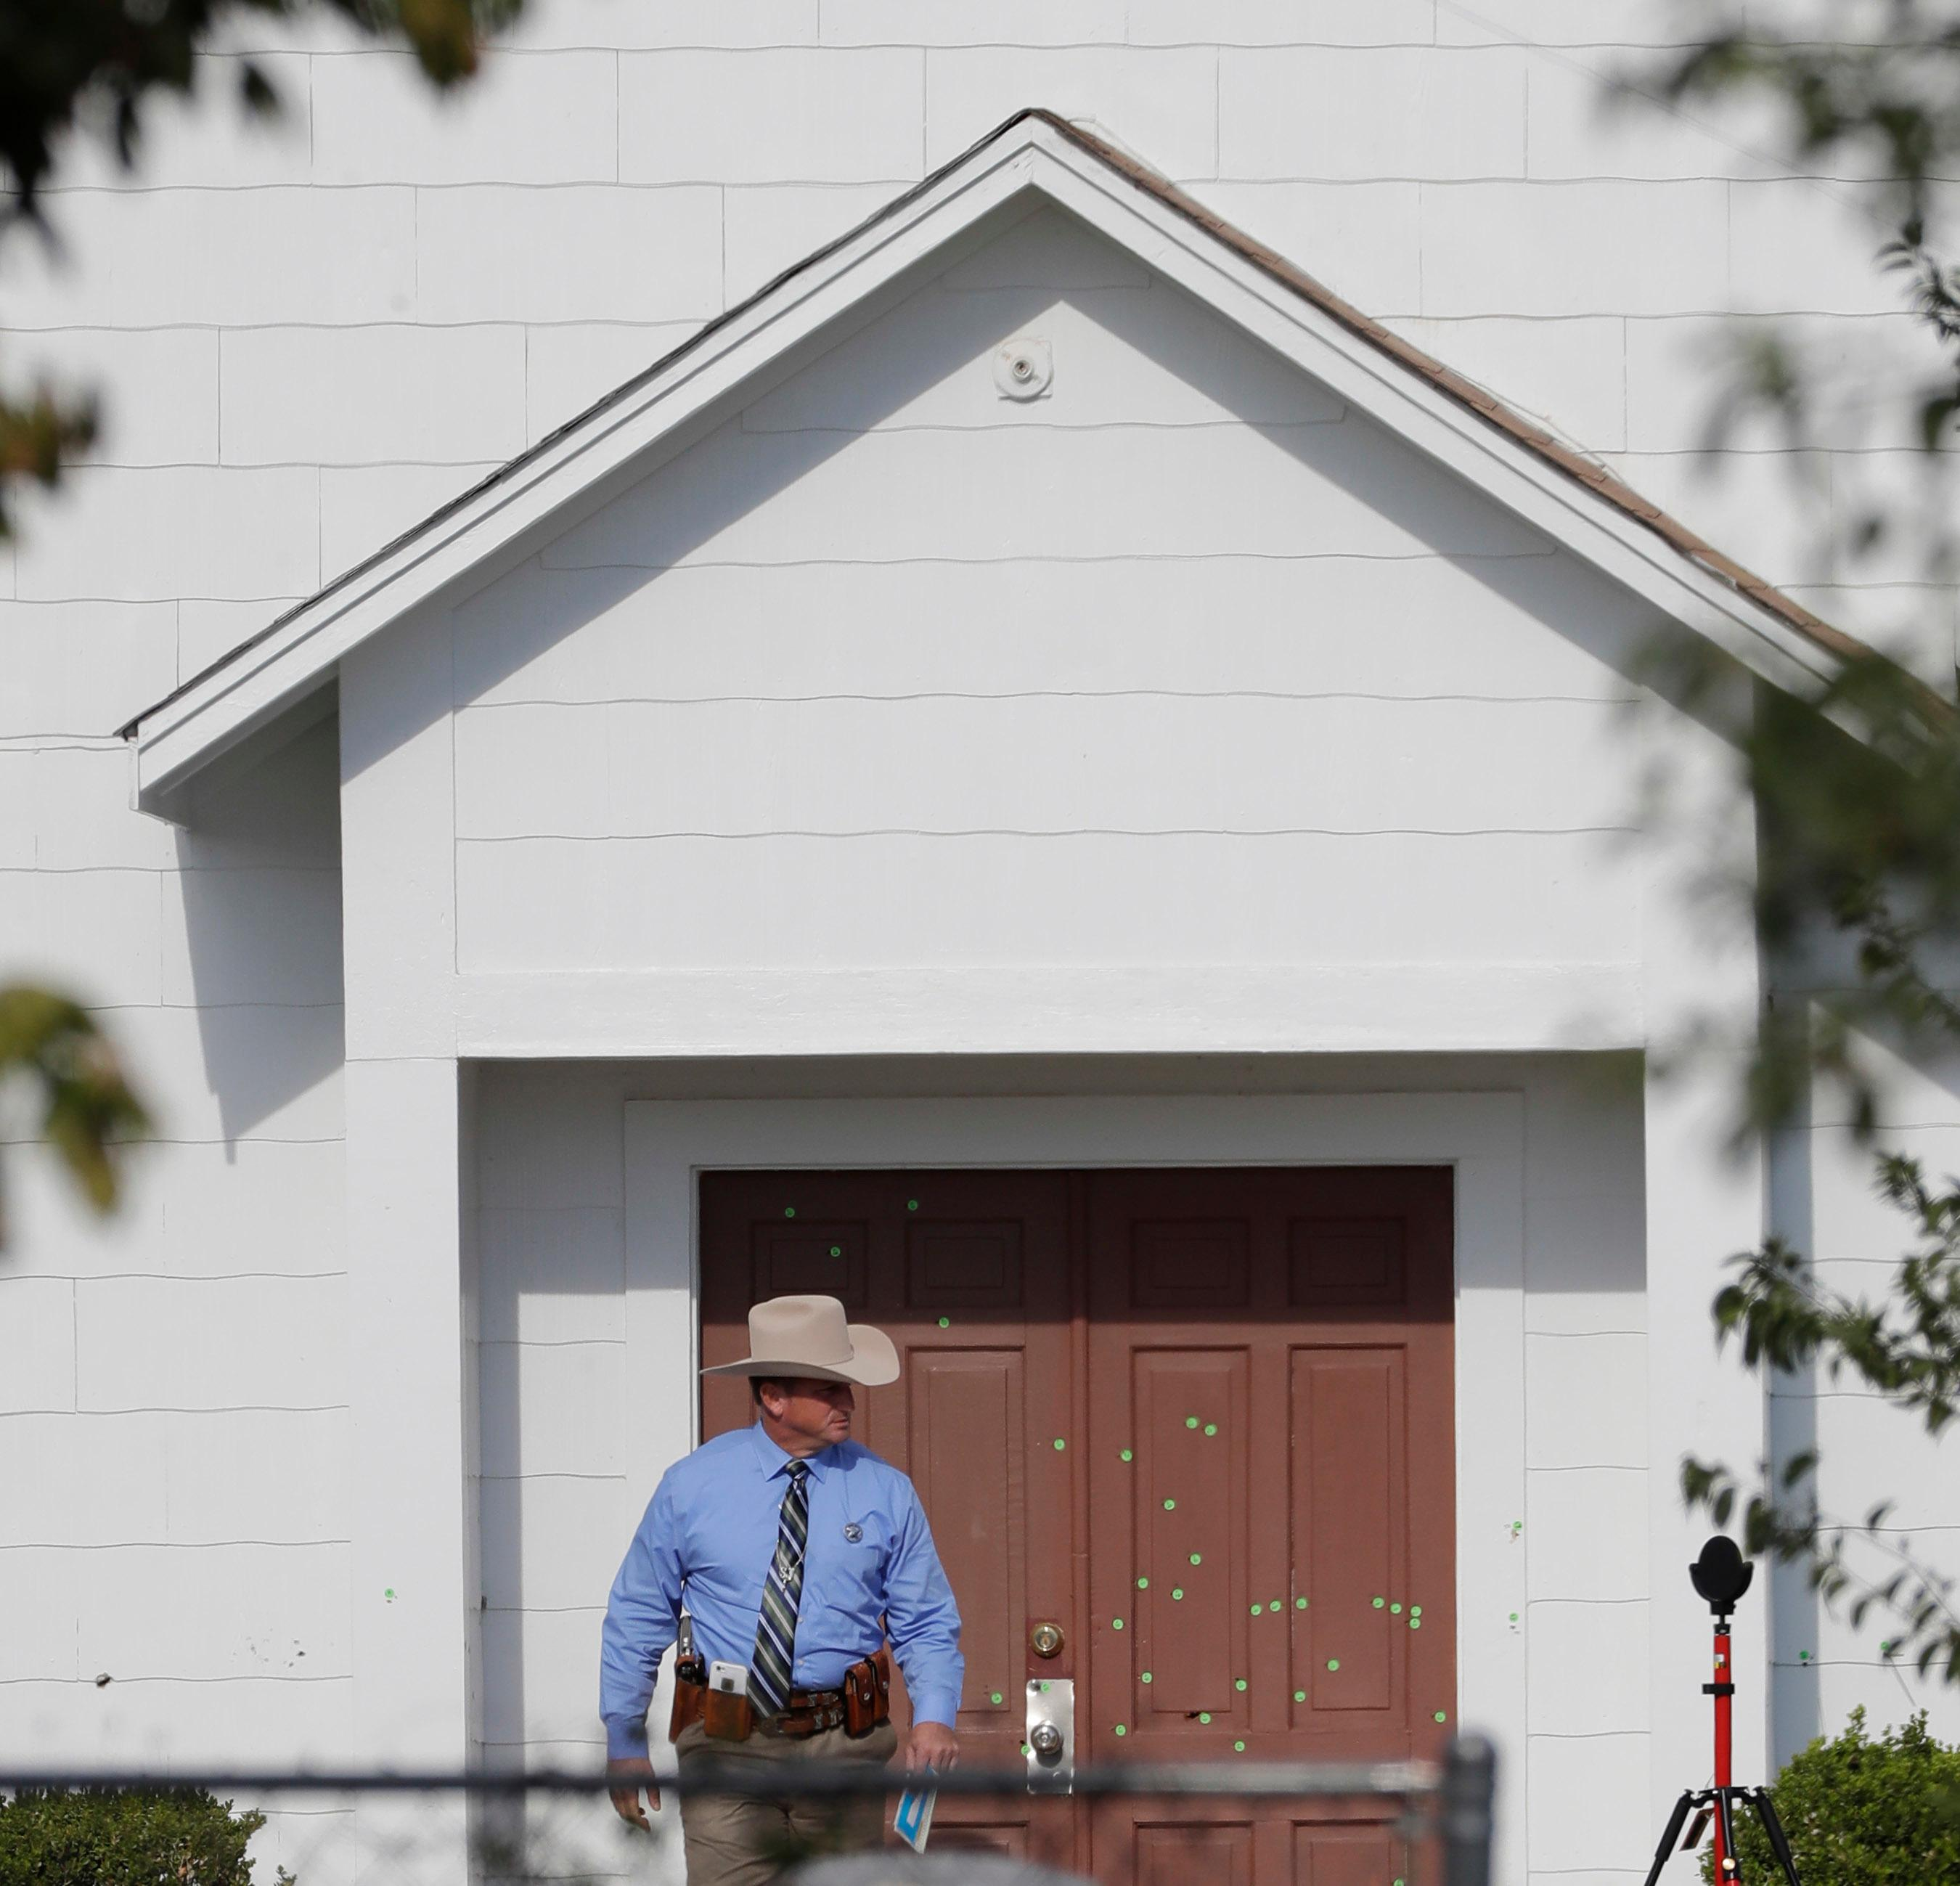 A law enforcement official leaves the First Baptist Church Tuesday, Nov. 7, 2017, in Sutherland Springs, Texas. A man opened fire inside the church in the small South Texas community on Sunday, killing more than two dozen and injuring others. (AP Photo/David J. Phillip)